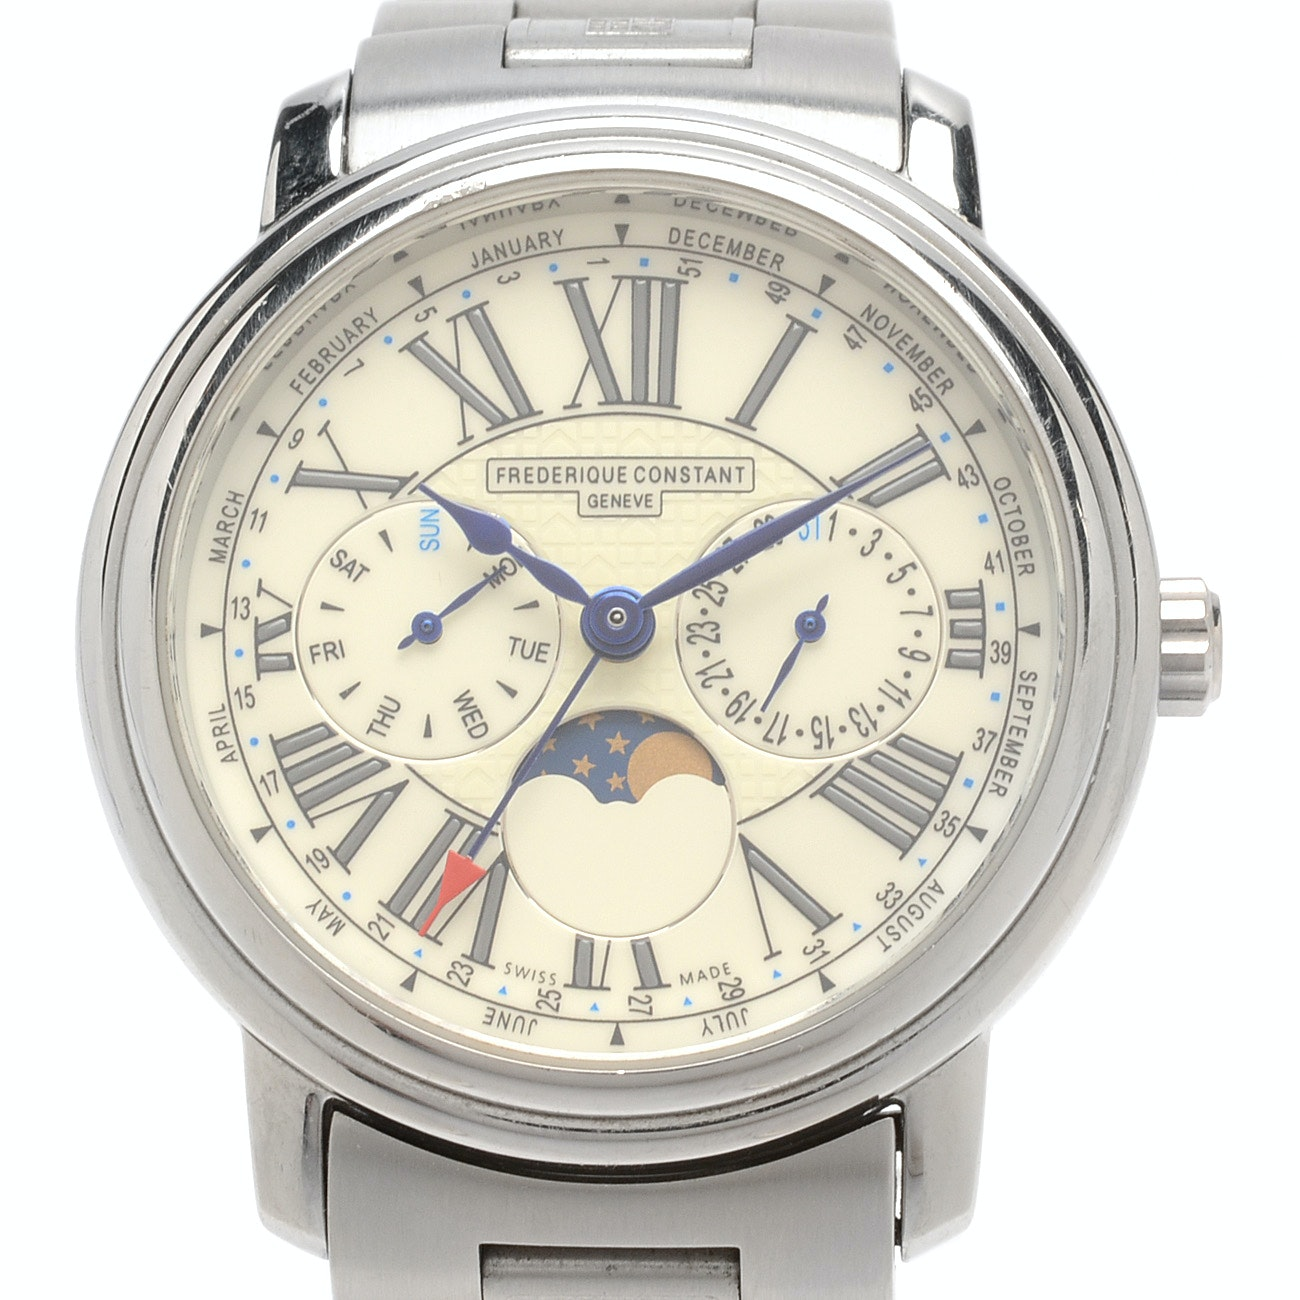 Frederique Constant Swiss Watch with Triple Date and Moon Phase Display